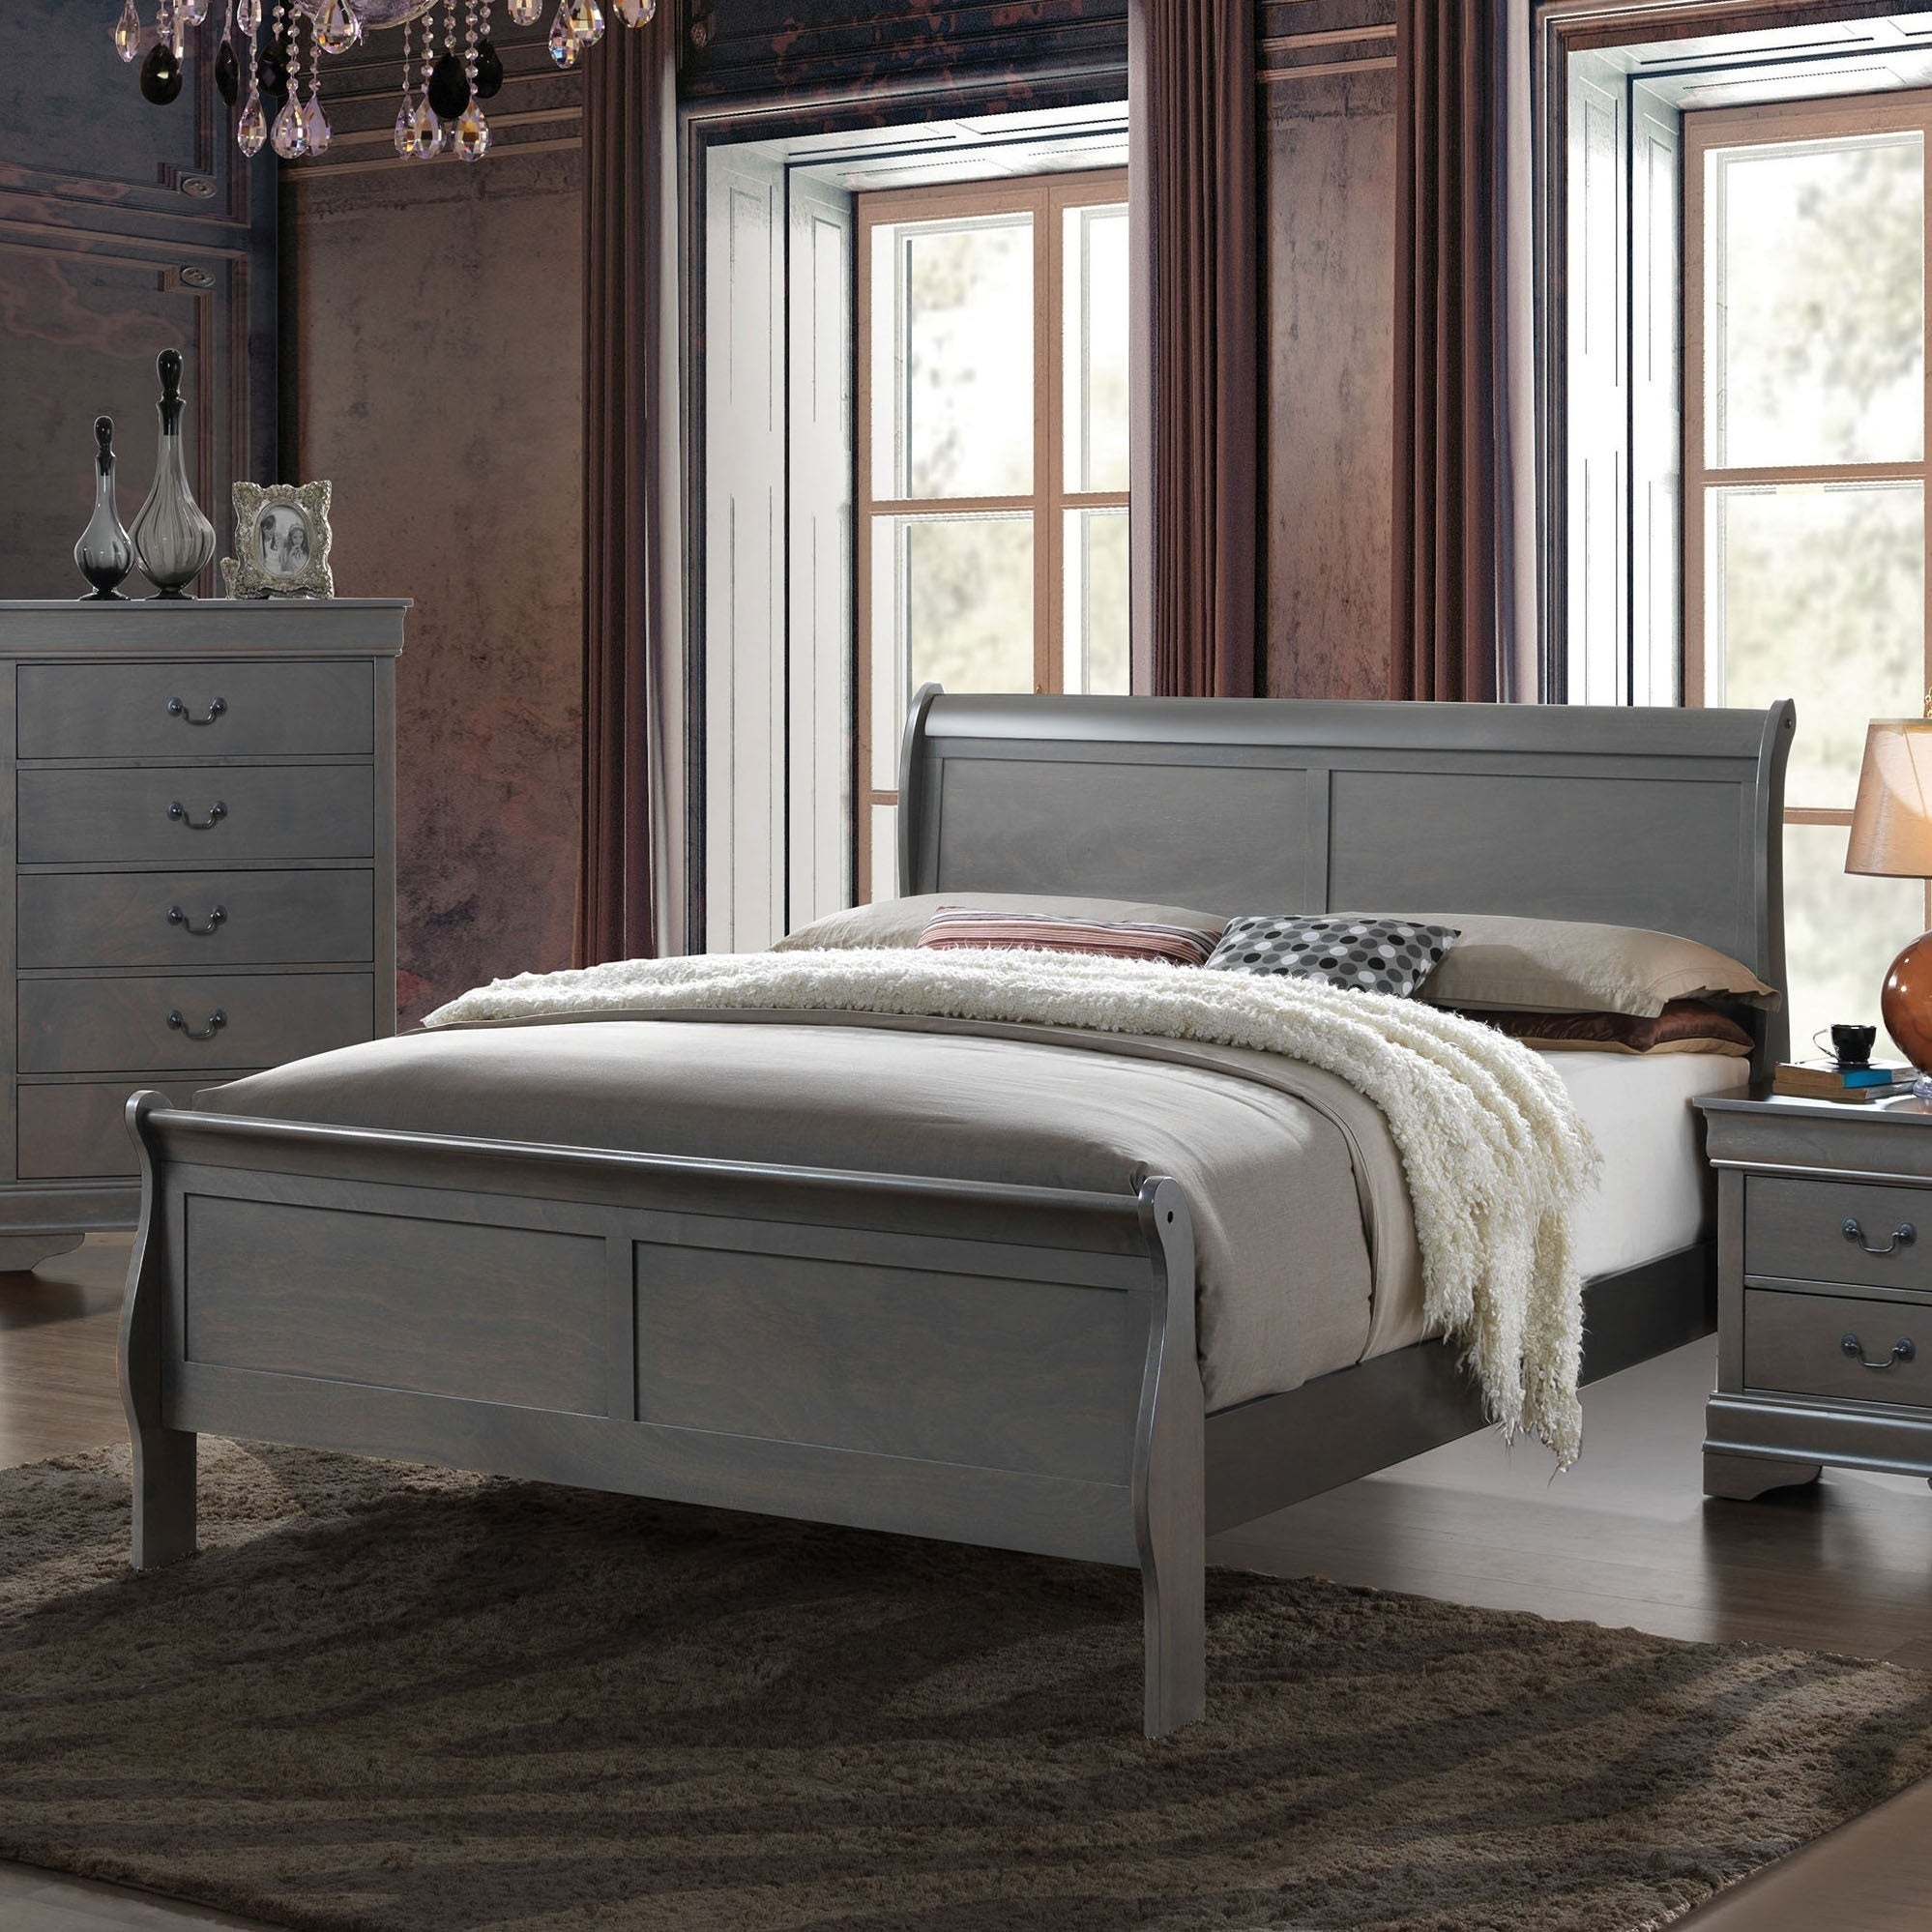 p nottingham the beds bed home gry luxeo sleigh gray lux king depot headboards